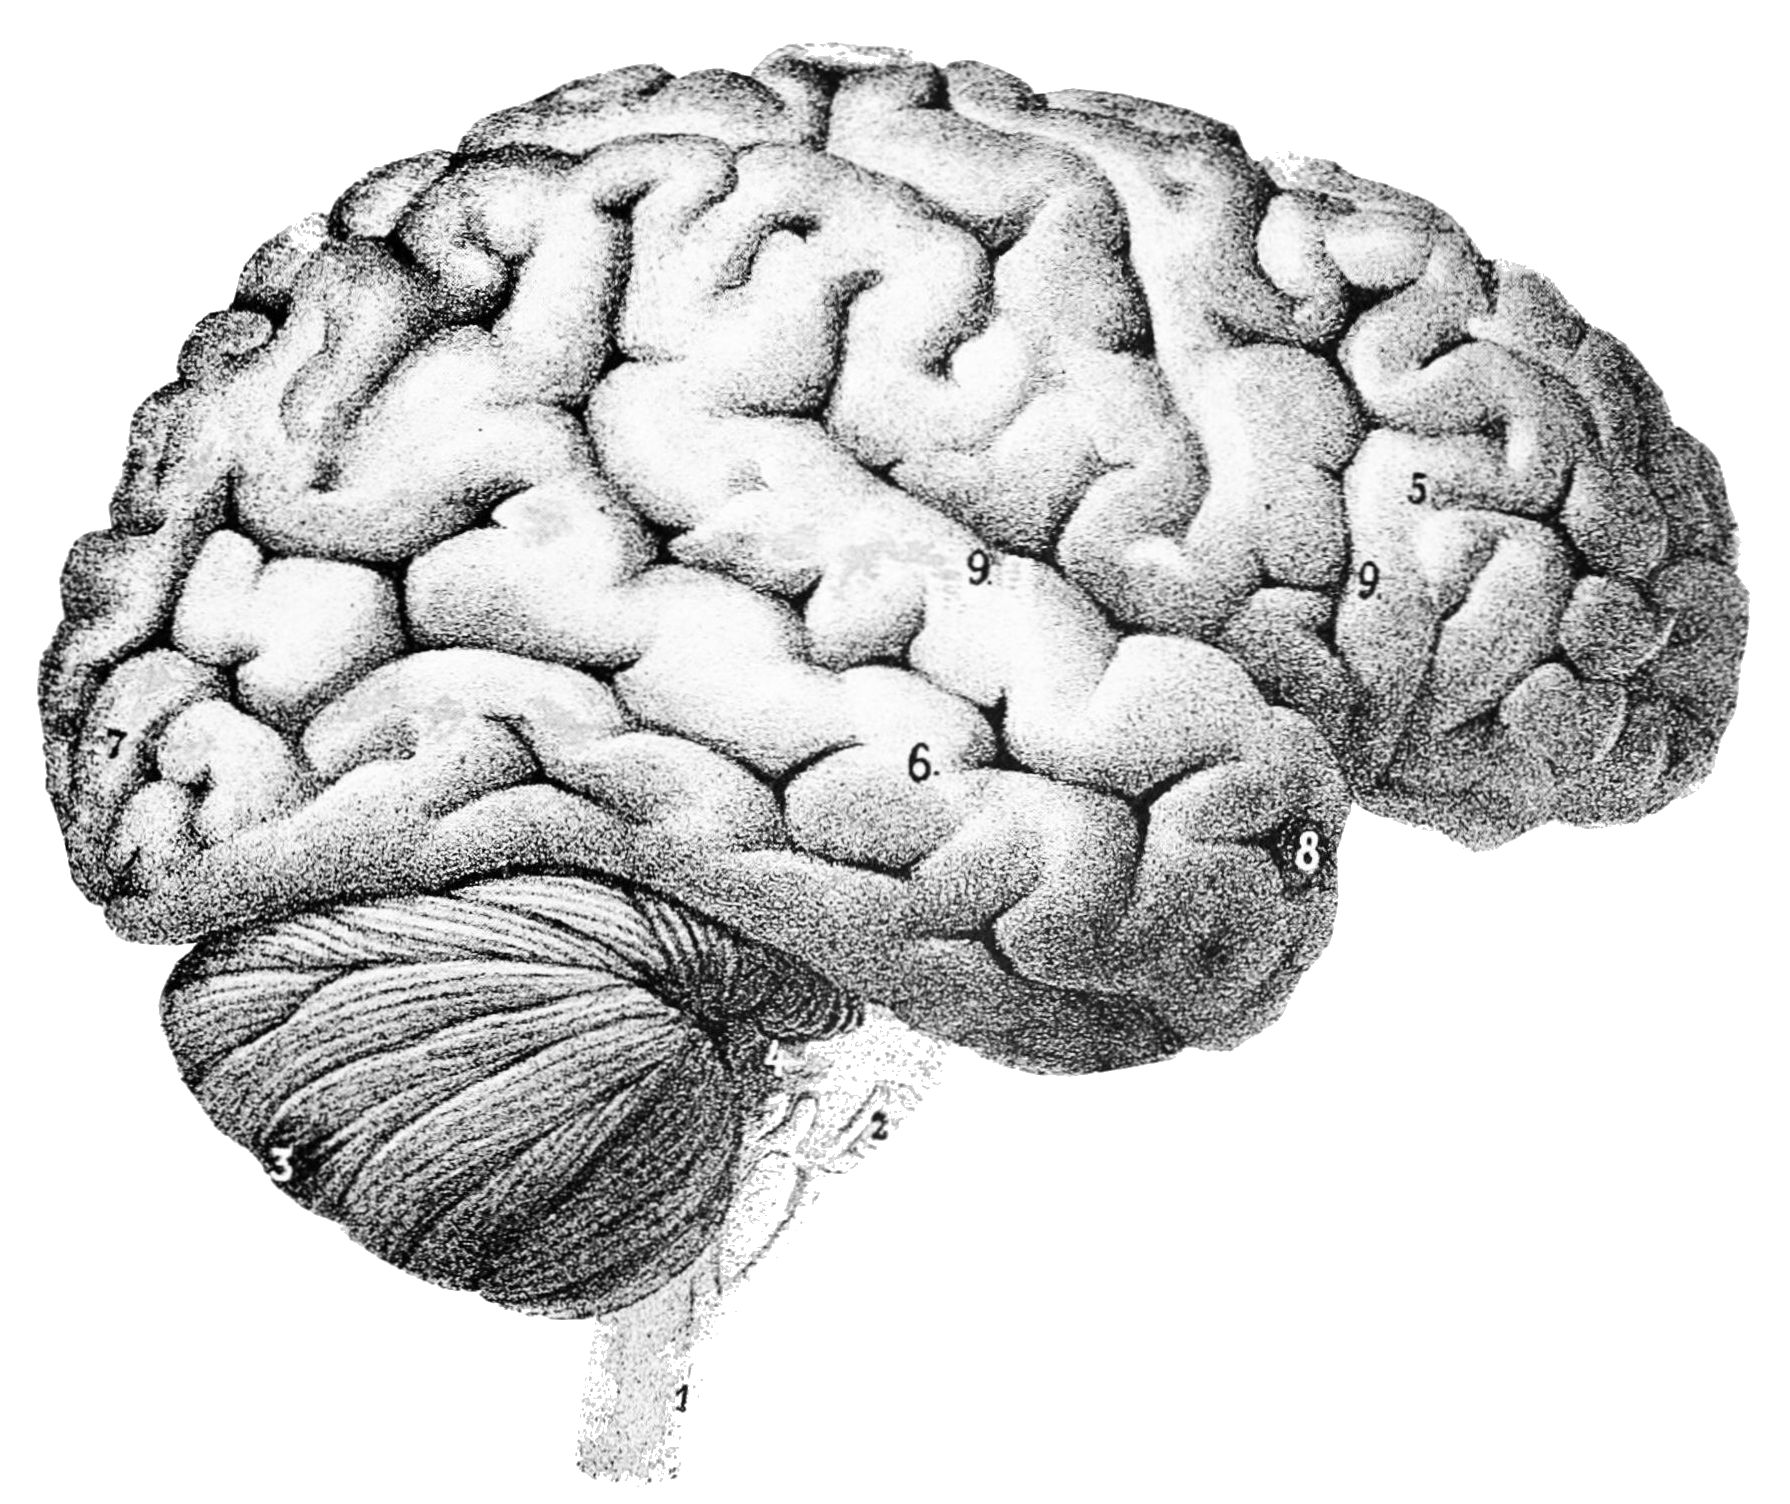 image credit: https://commons.wikimedia.org/wiki/File:PSM_V46_D167_Outer_surface_of_the_human_brain.jpg